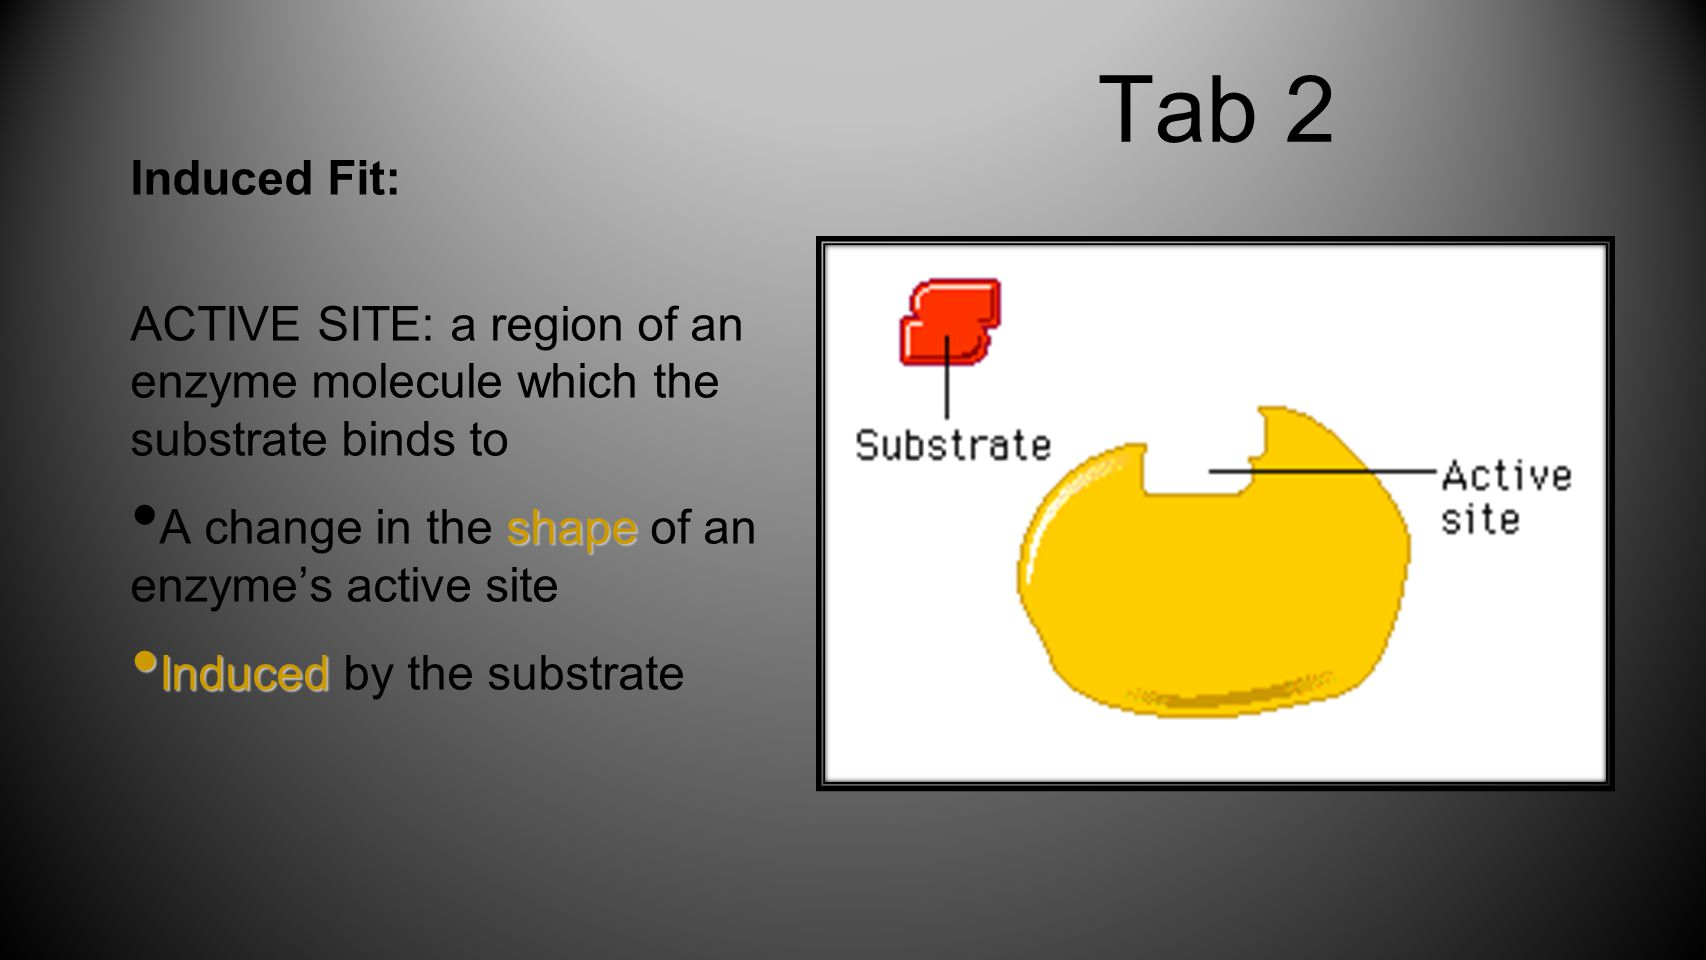 Tab 2 Induced Fit: ACTIVE SITE: a region of an enzyme molecule which the substrate binds to. A change in the shape of an enzyme's active site.